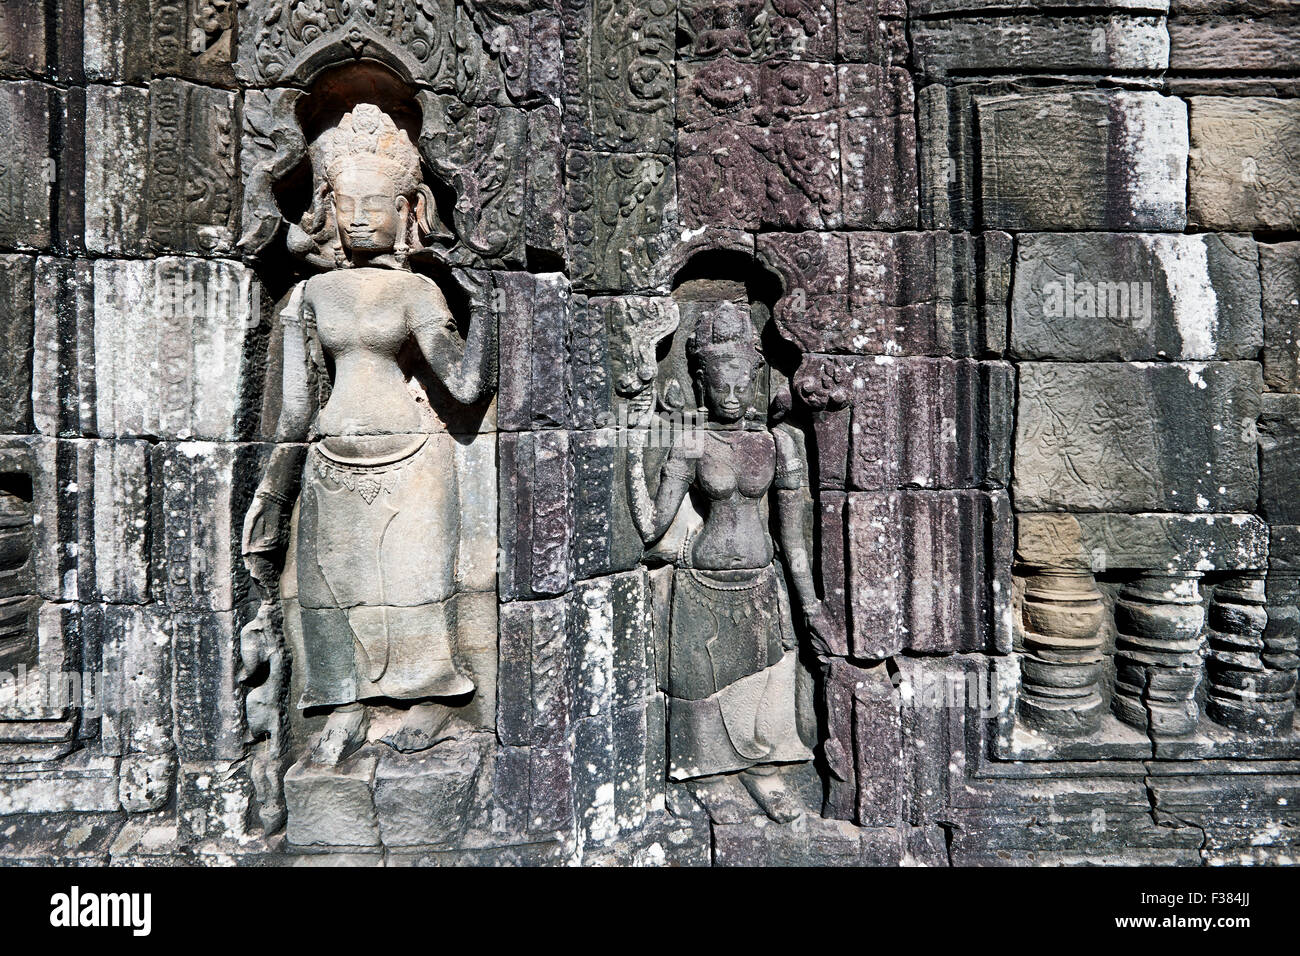 Stone carving on wall in Banteay Kdei temple. Angkor Archaeological Park, Siem Reap Province, Cambodia. - Stock Image